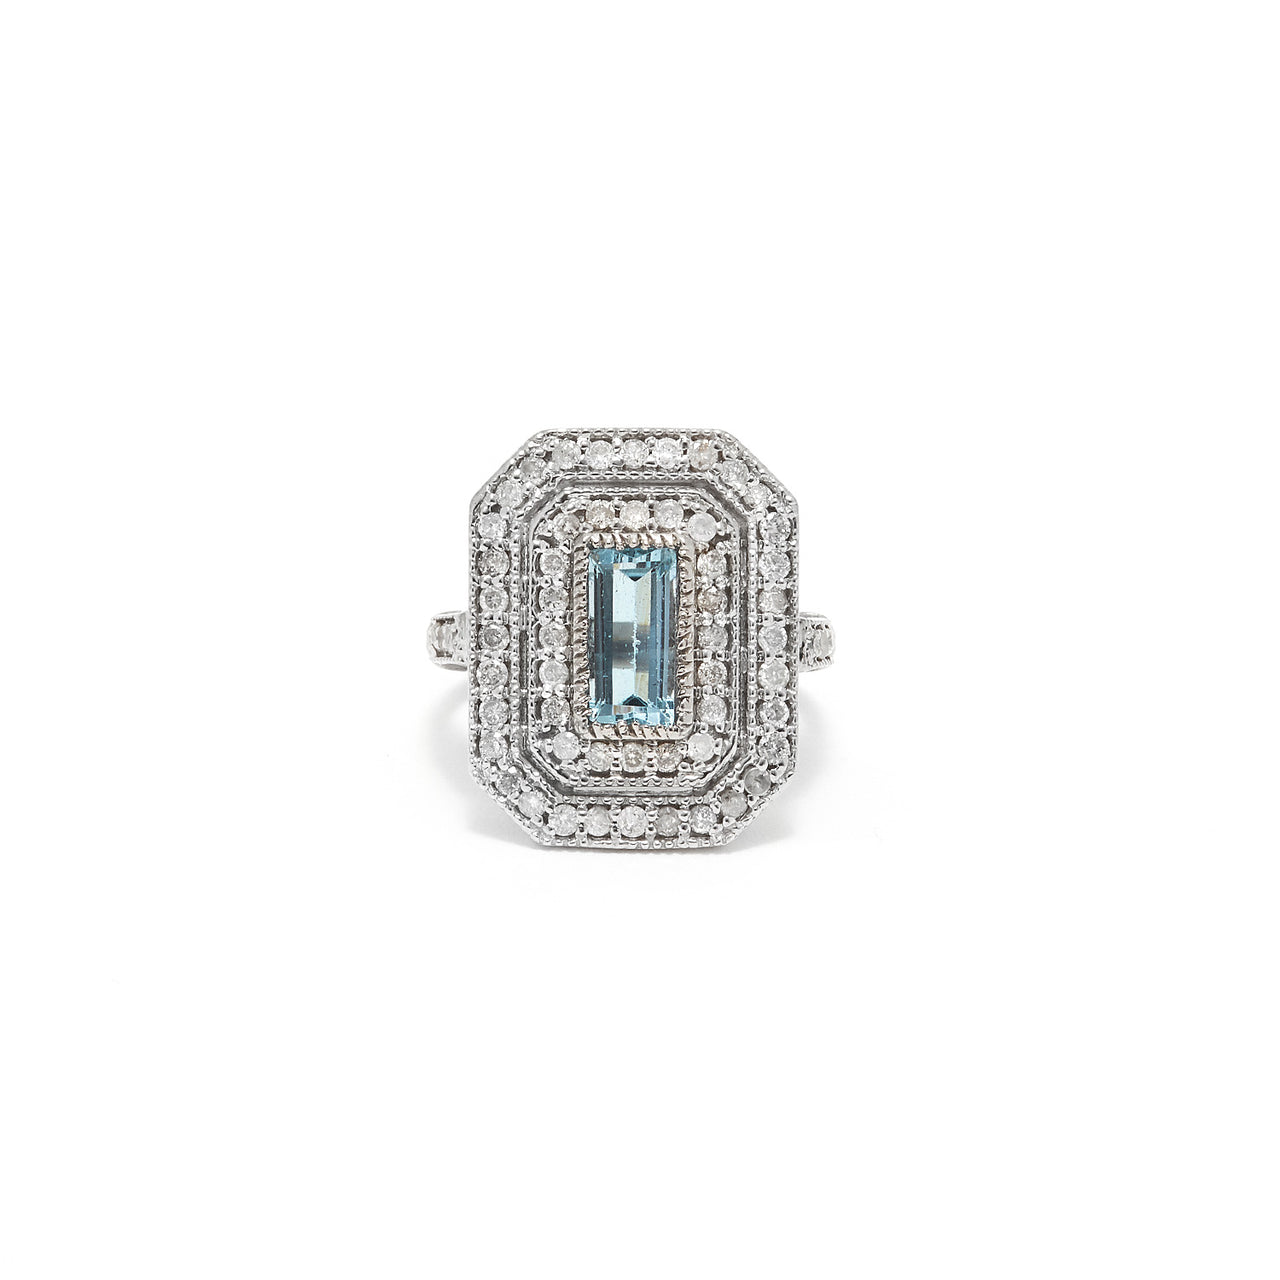 Aquamarine Art Deco Diamond Cocktail Ring-Ring-Jaipur Atelier